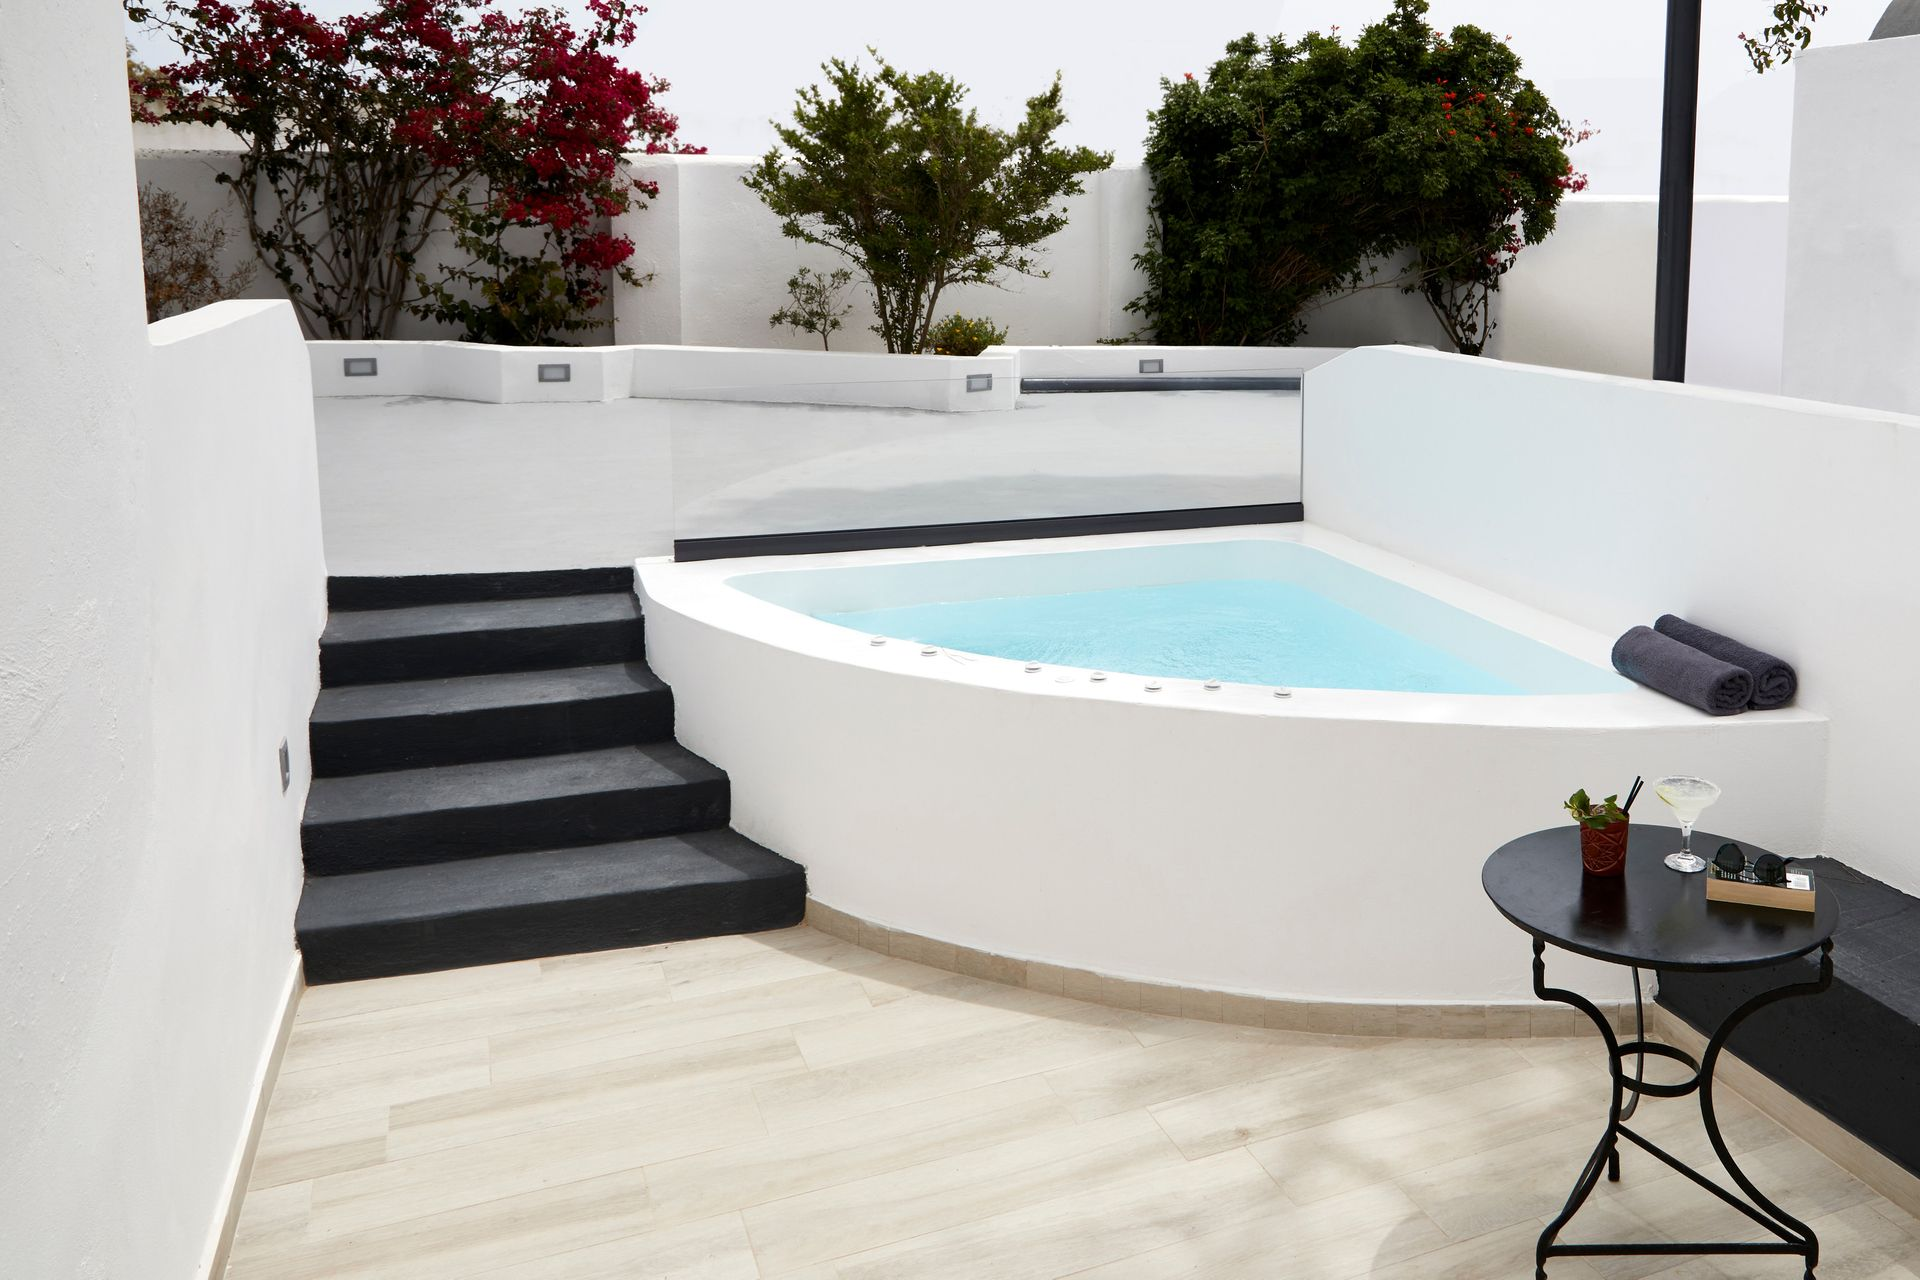 SUITES WITH JACUZZI -35% ONLY ON OUR SITE!